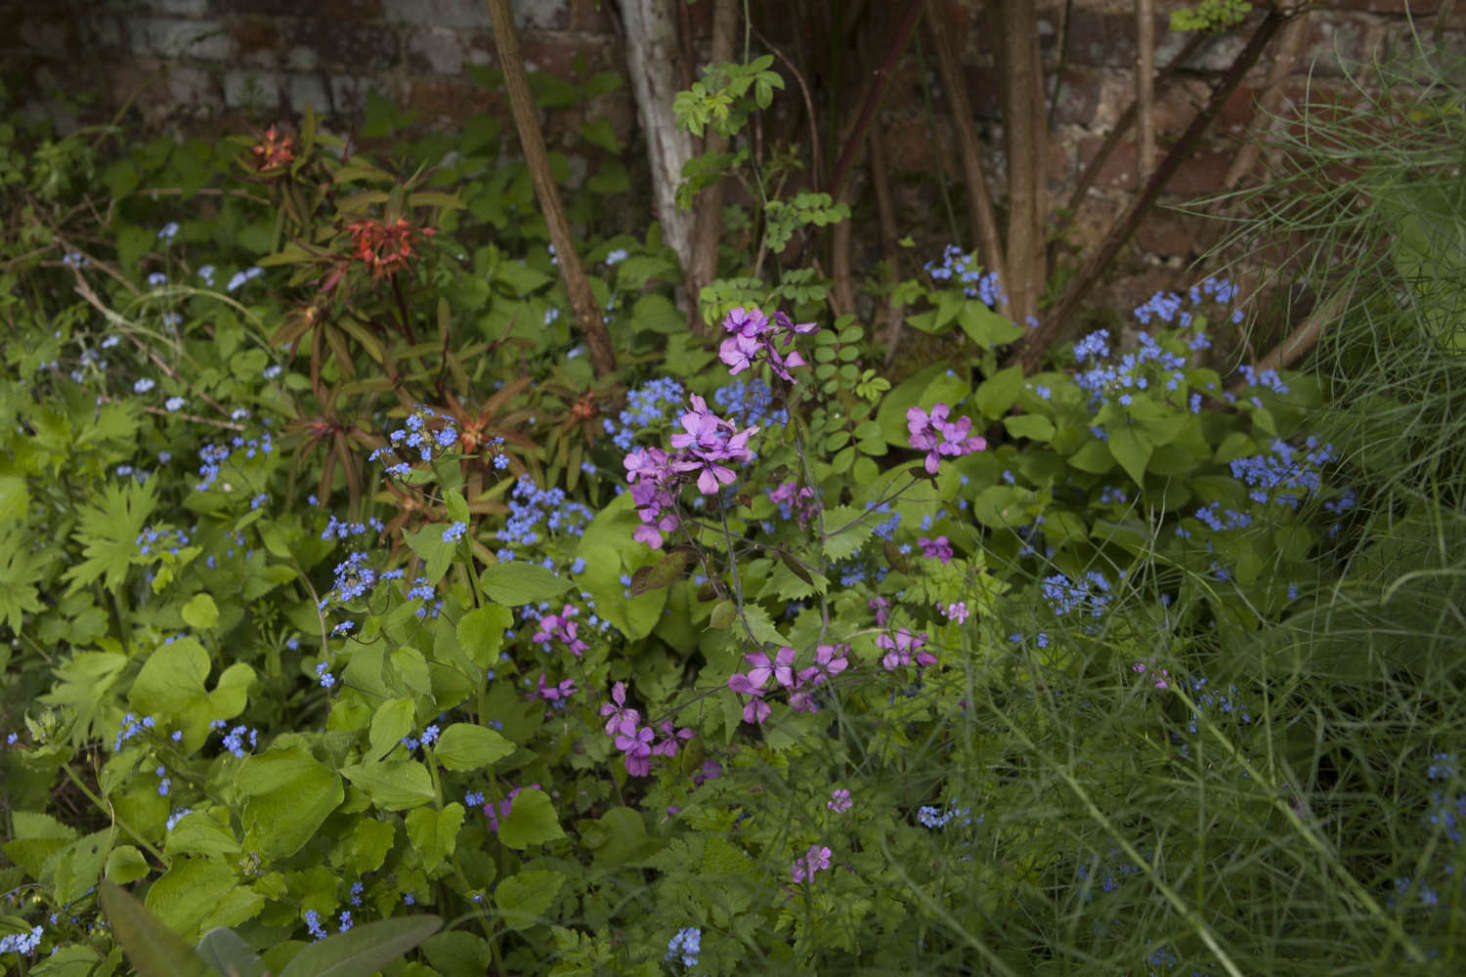 Honesty prevents this combination of fireglow spurge, forget-me-not, and fennel from being too tasteful.